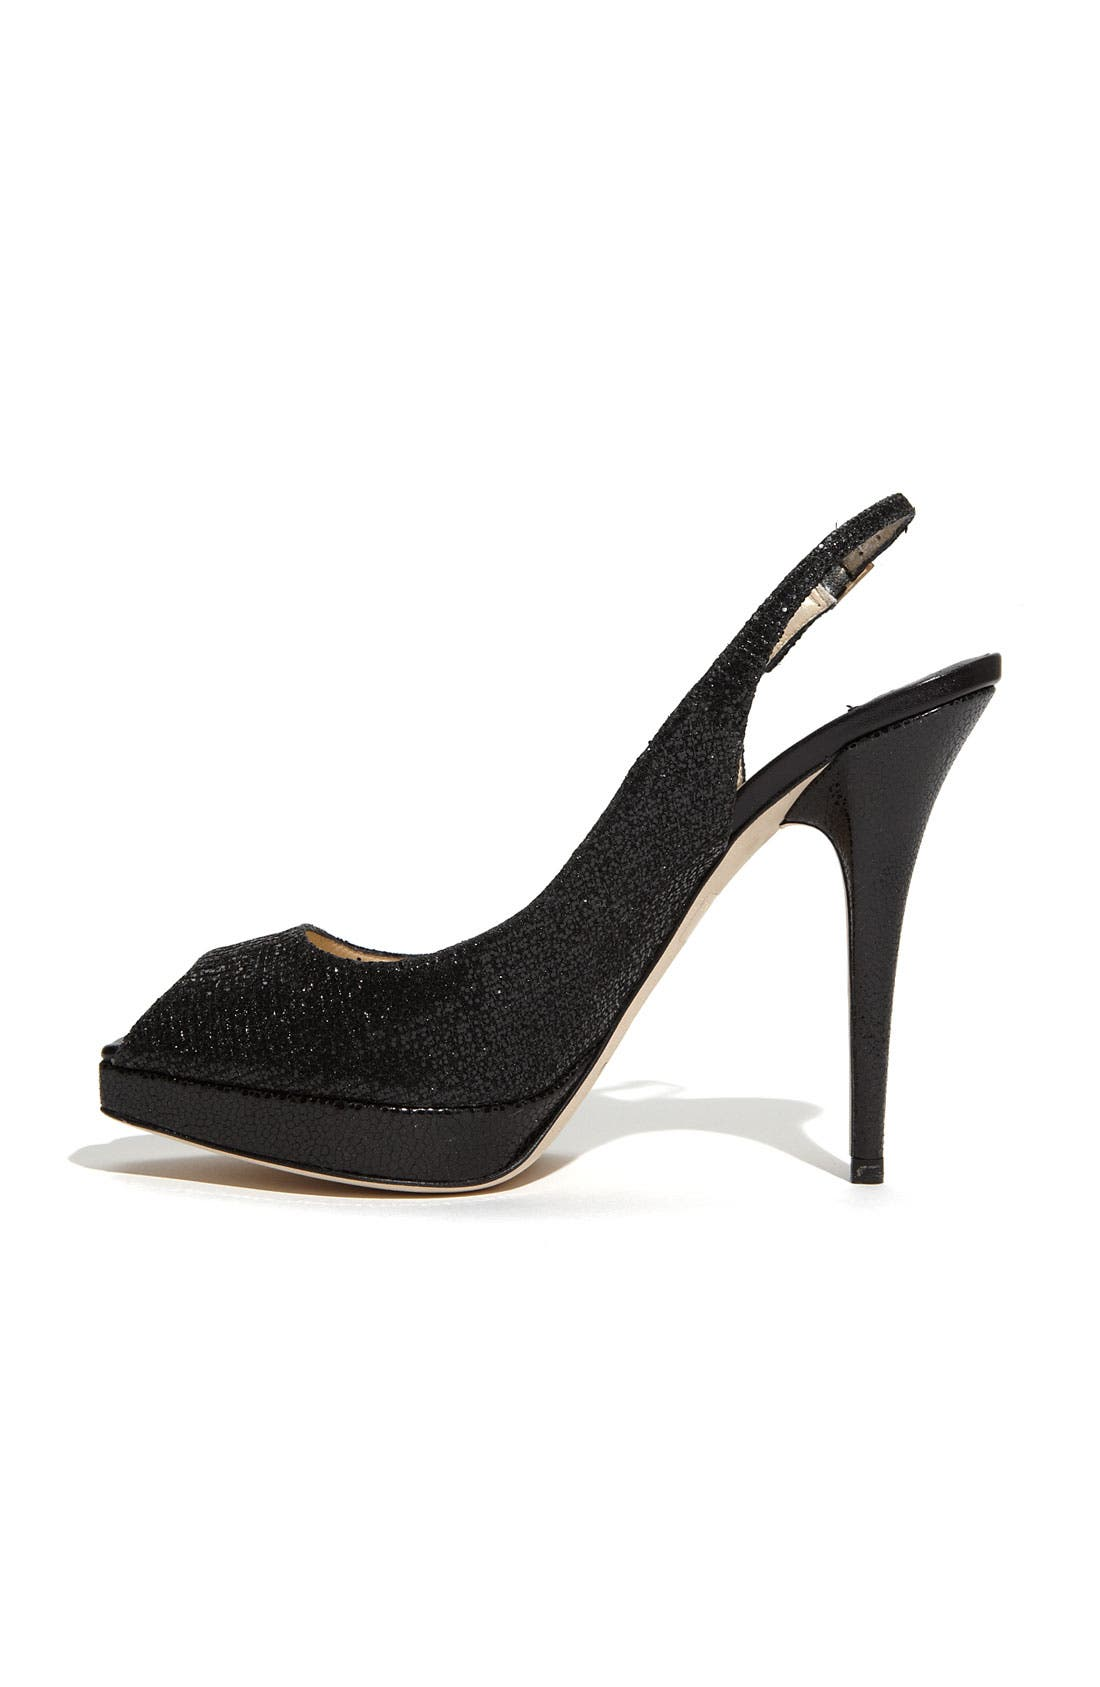 'Clue' Glitter Slingback Pump,                             Alternate thumbnail 2, color,                             001